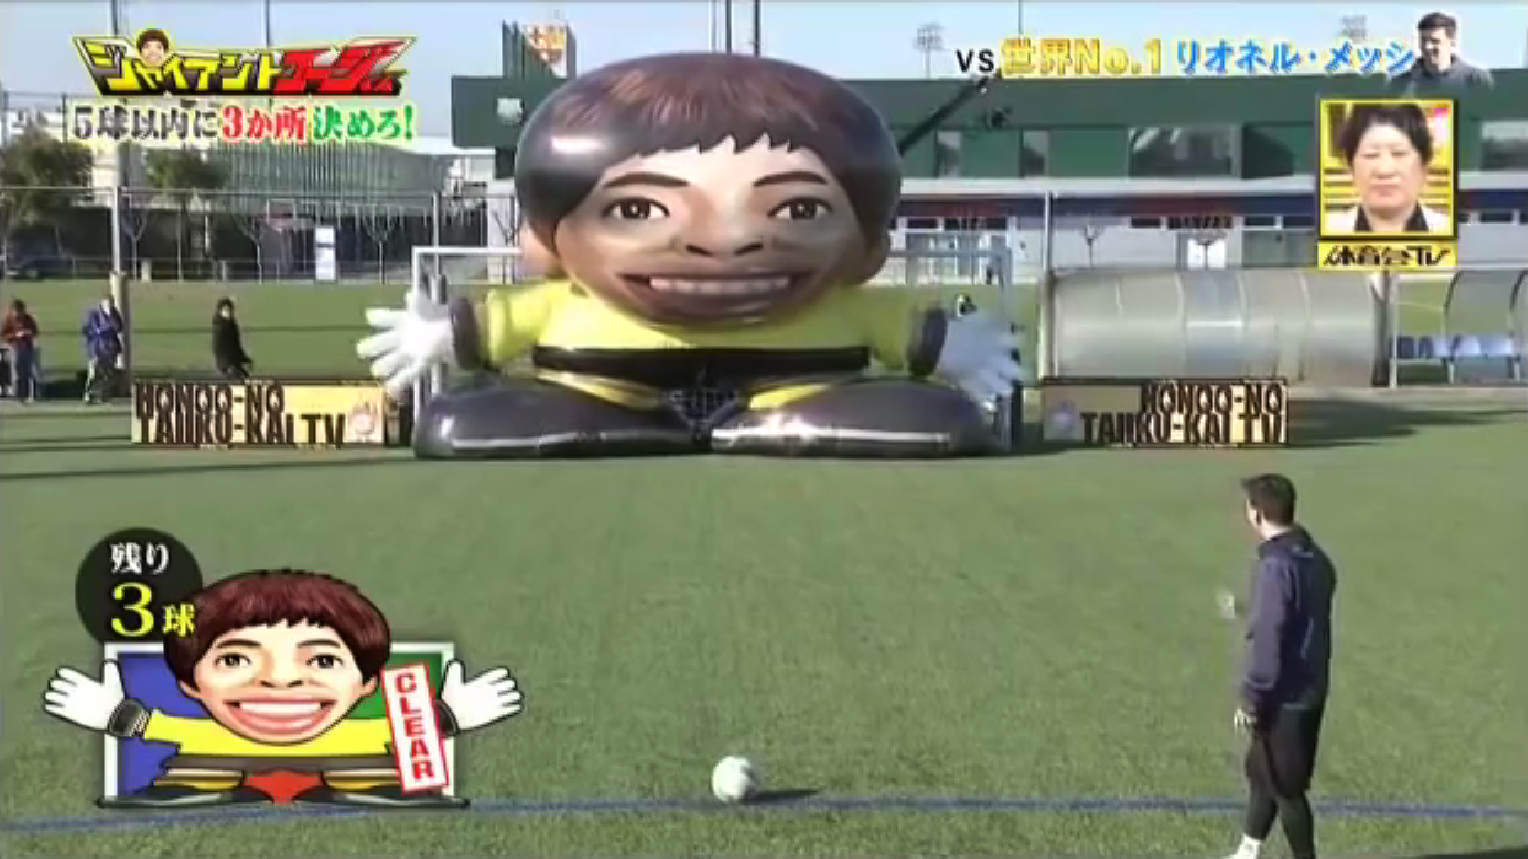 Soccer stud Lionel Messi was on a Japanese game show where he had to score goals against a giant, inflatable Messi.